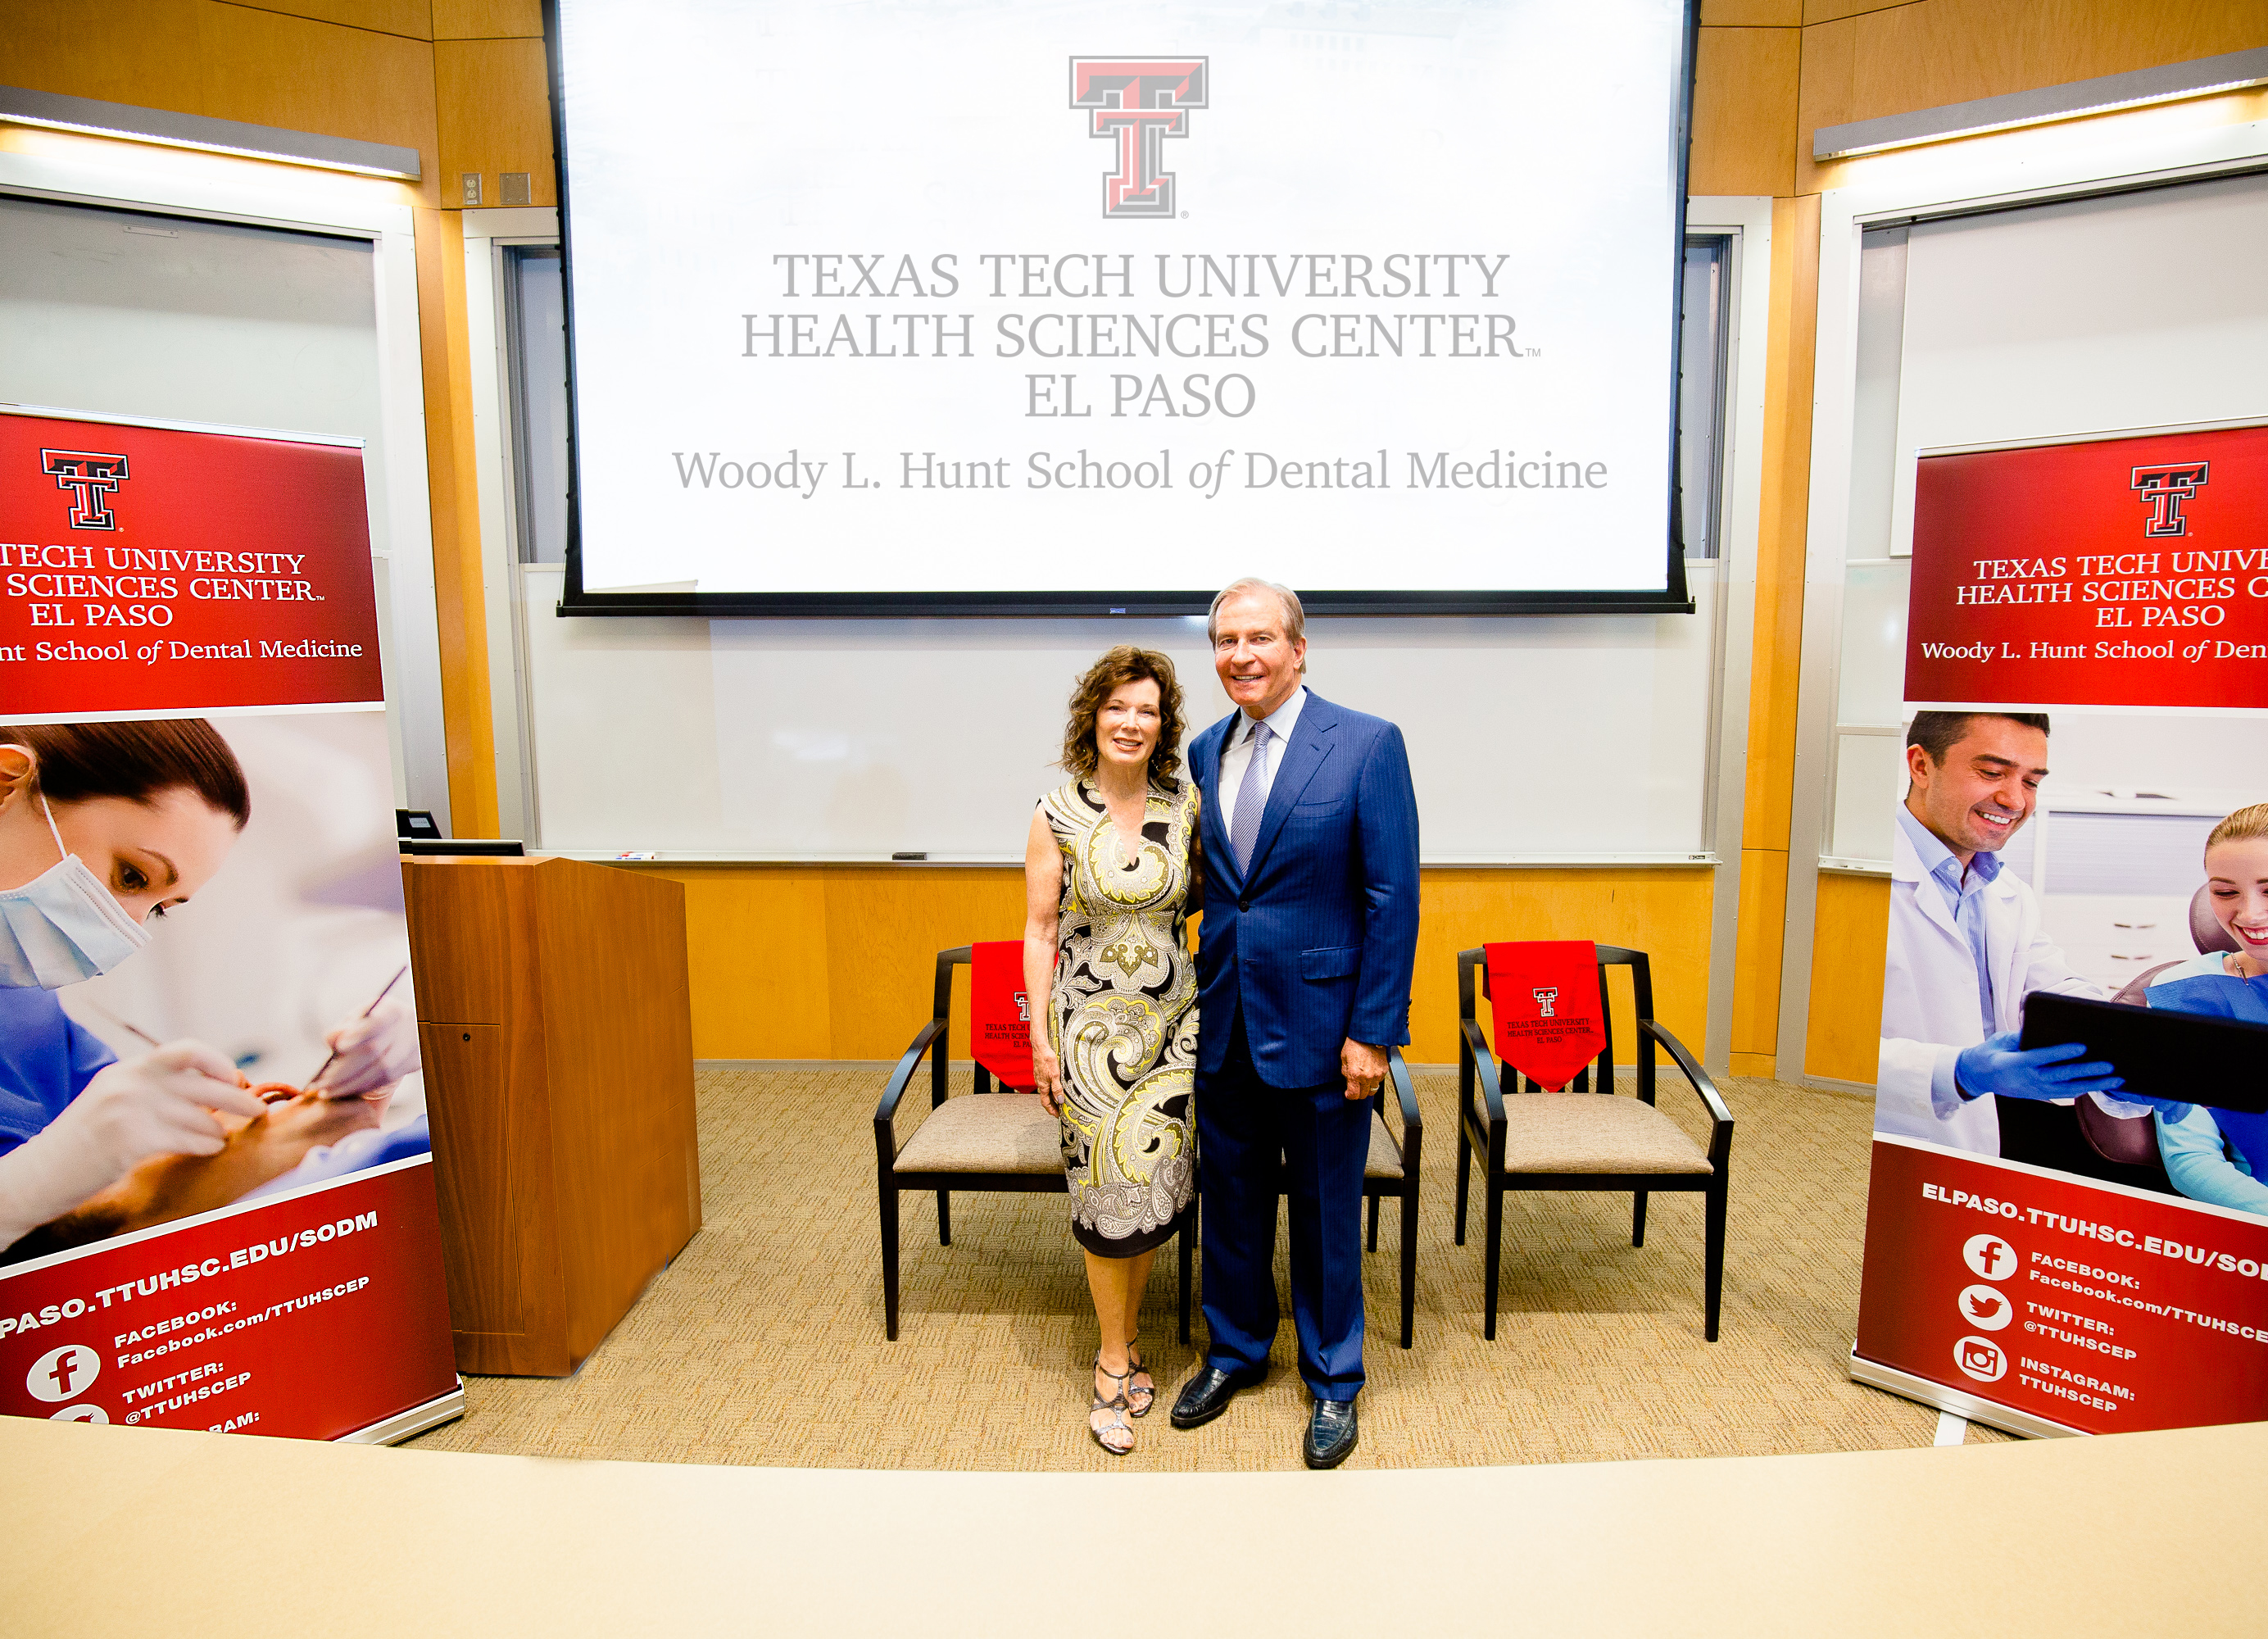 TTUHSC El Paso Announces School of Dental Medicine